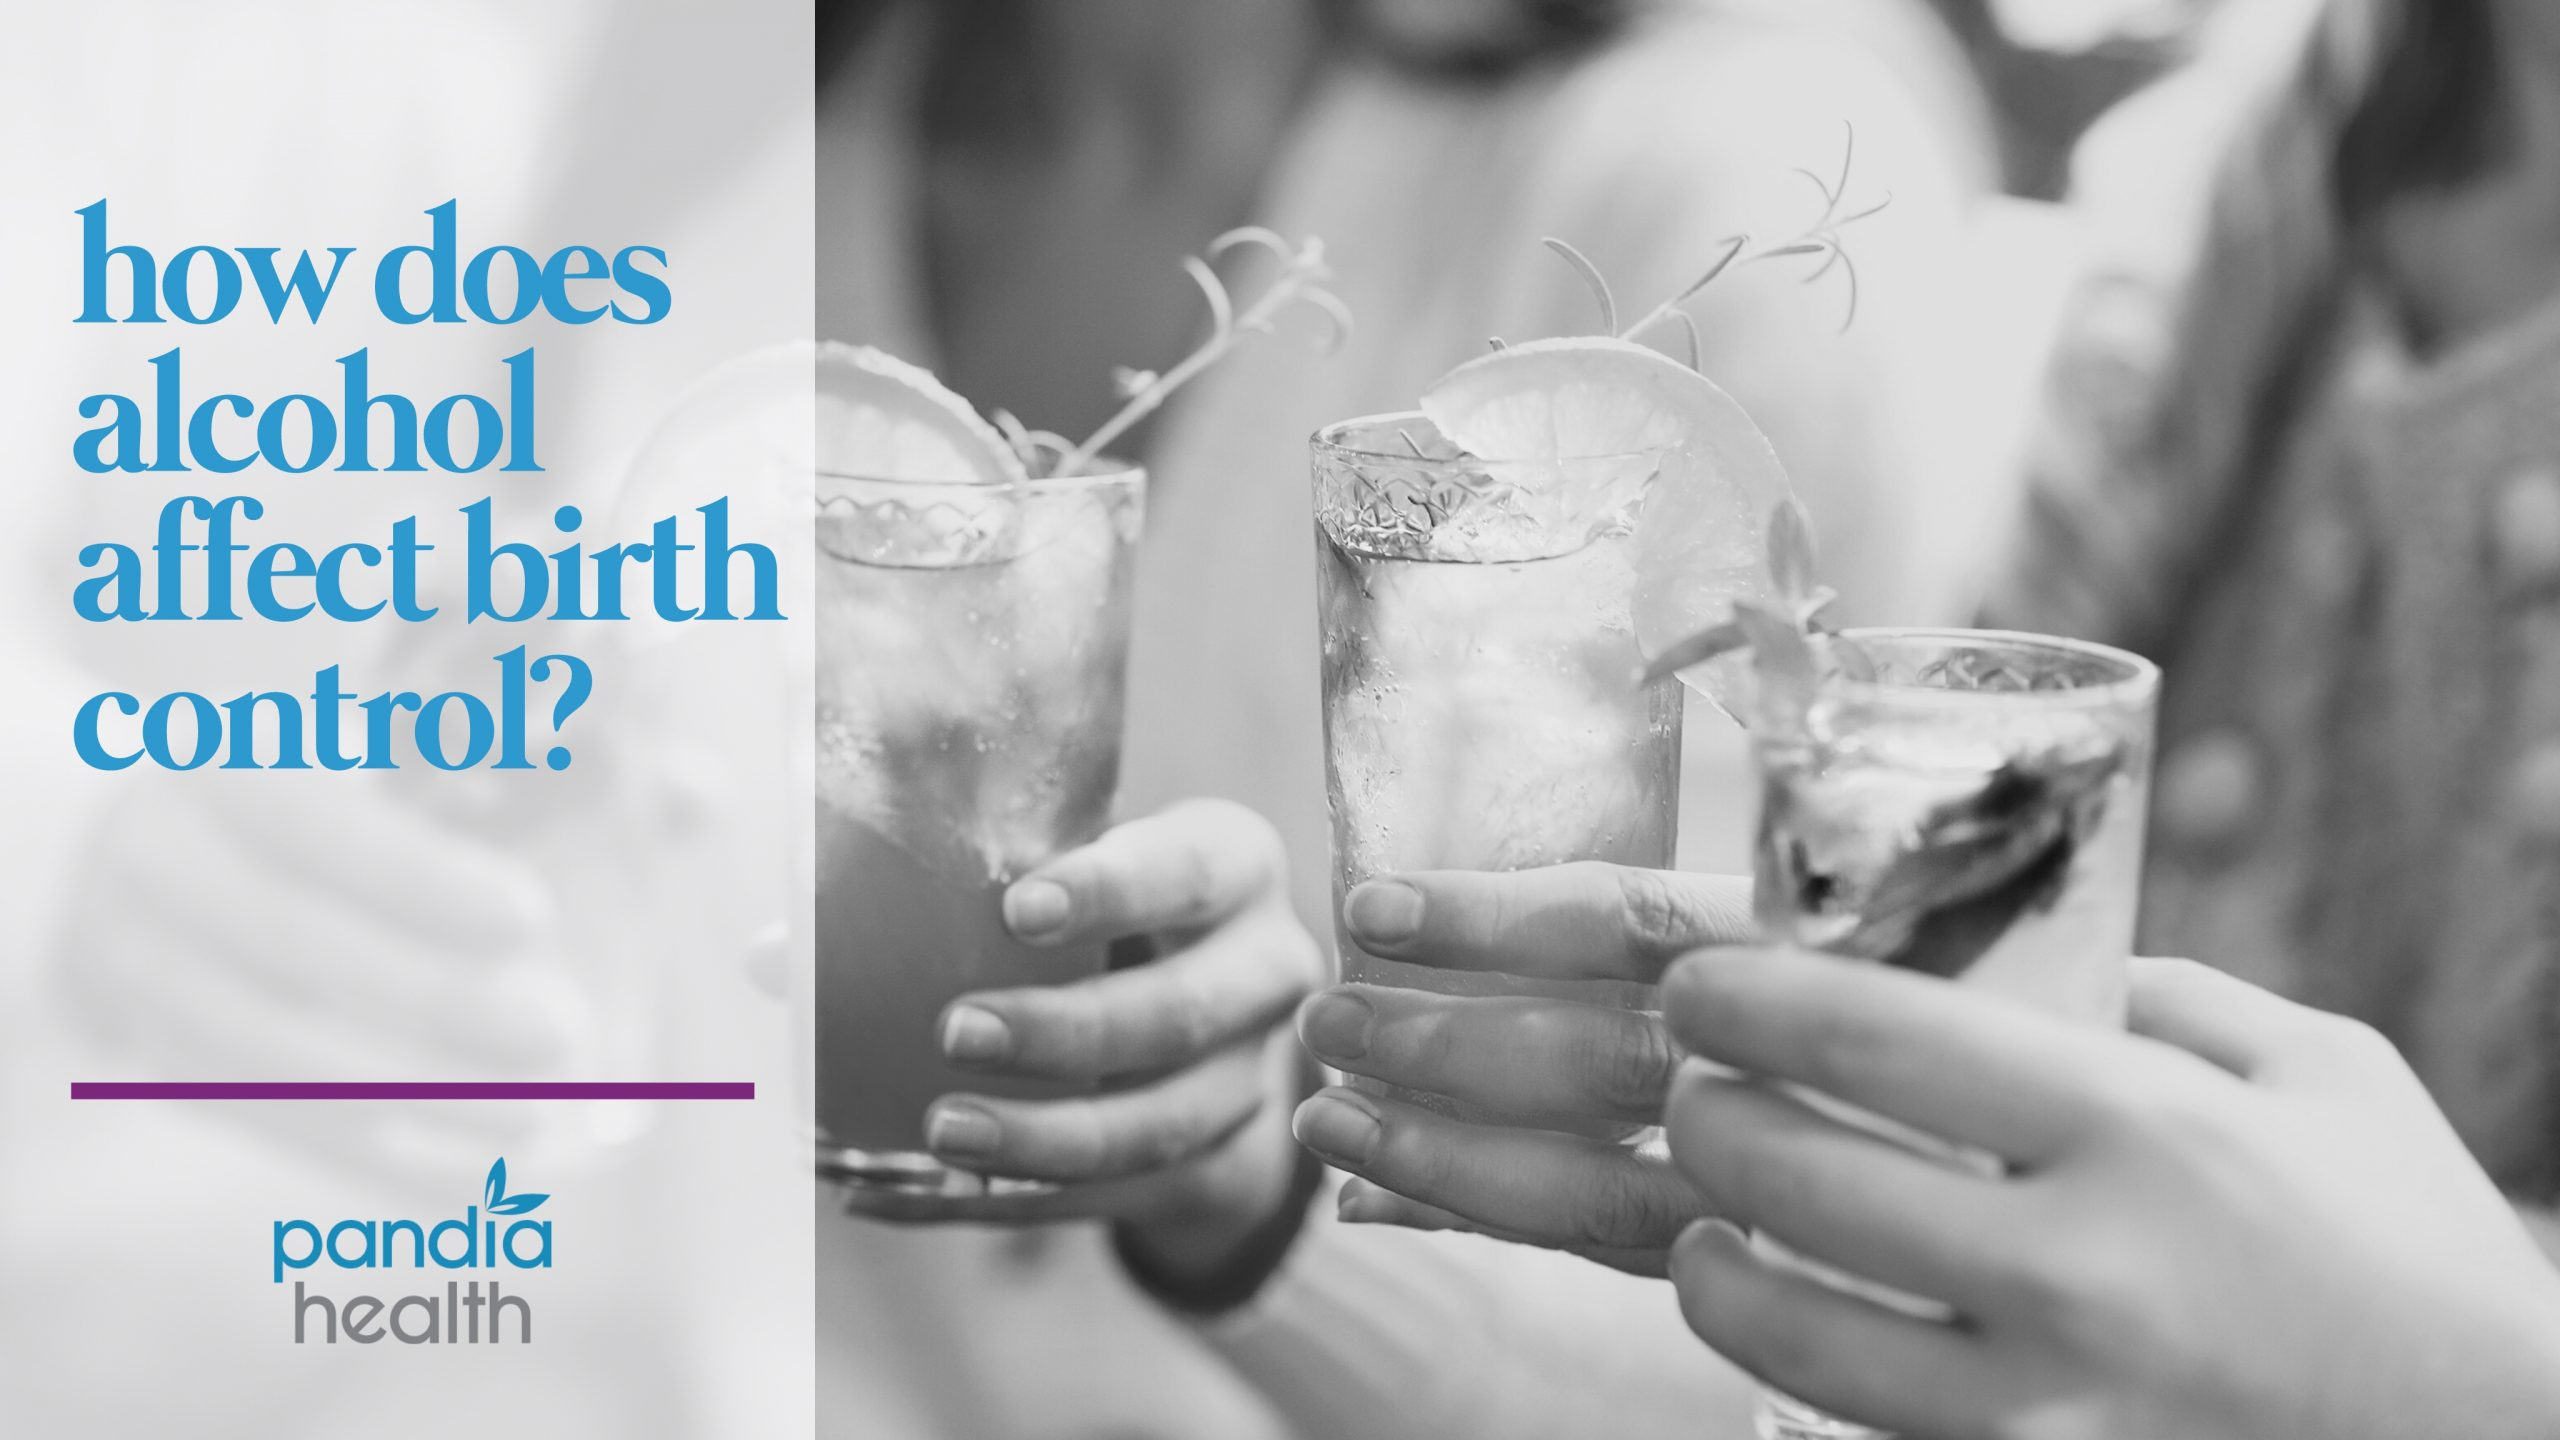 how does alcohol affect birth control